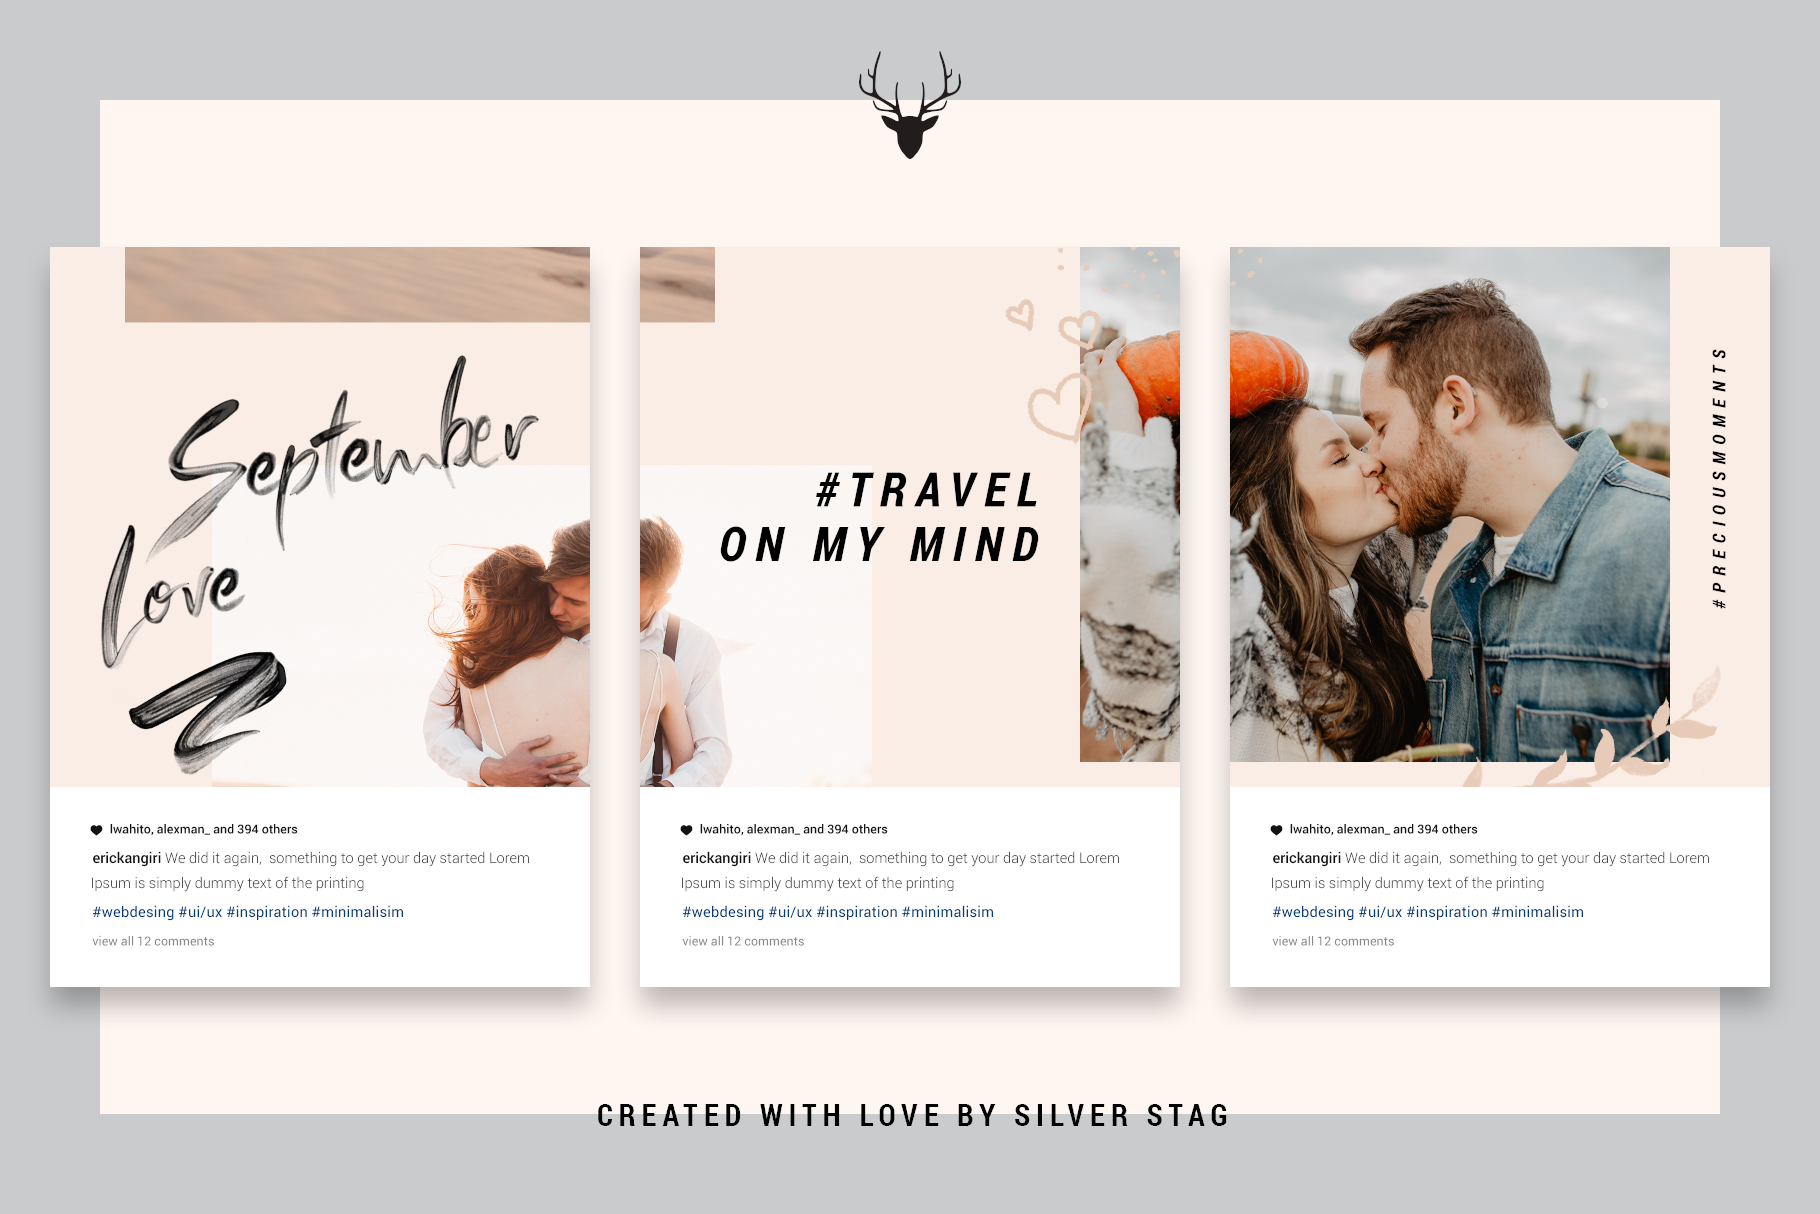 InstaGrid 5.0 - Creative & Modern Instagram Puzzle Template example image 4